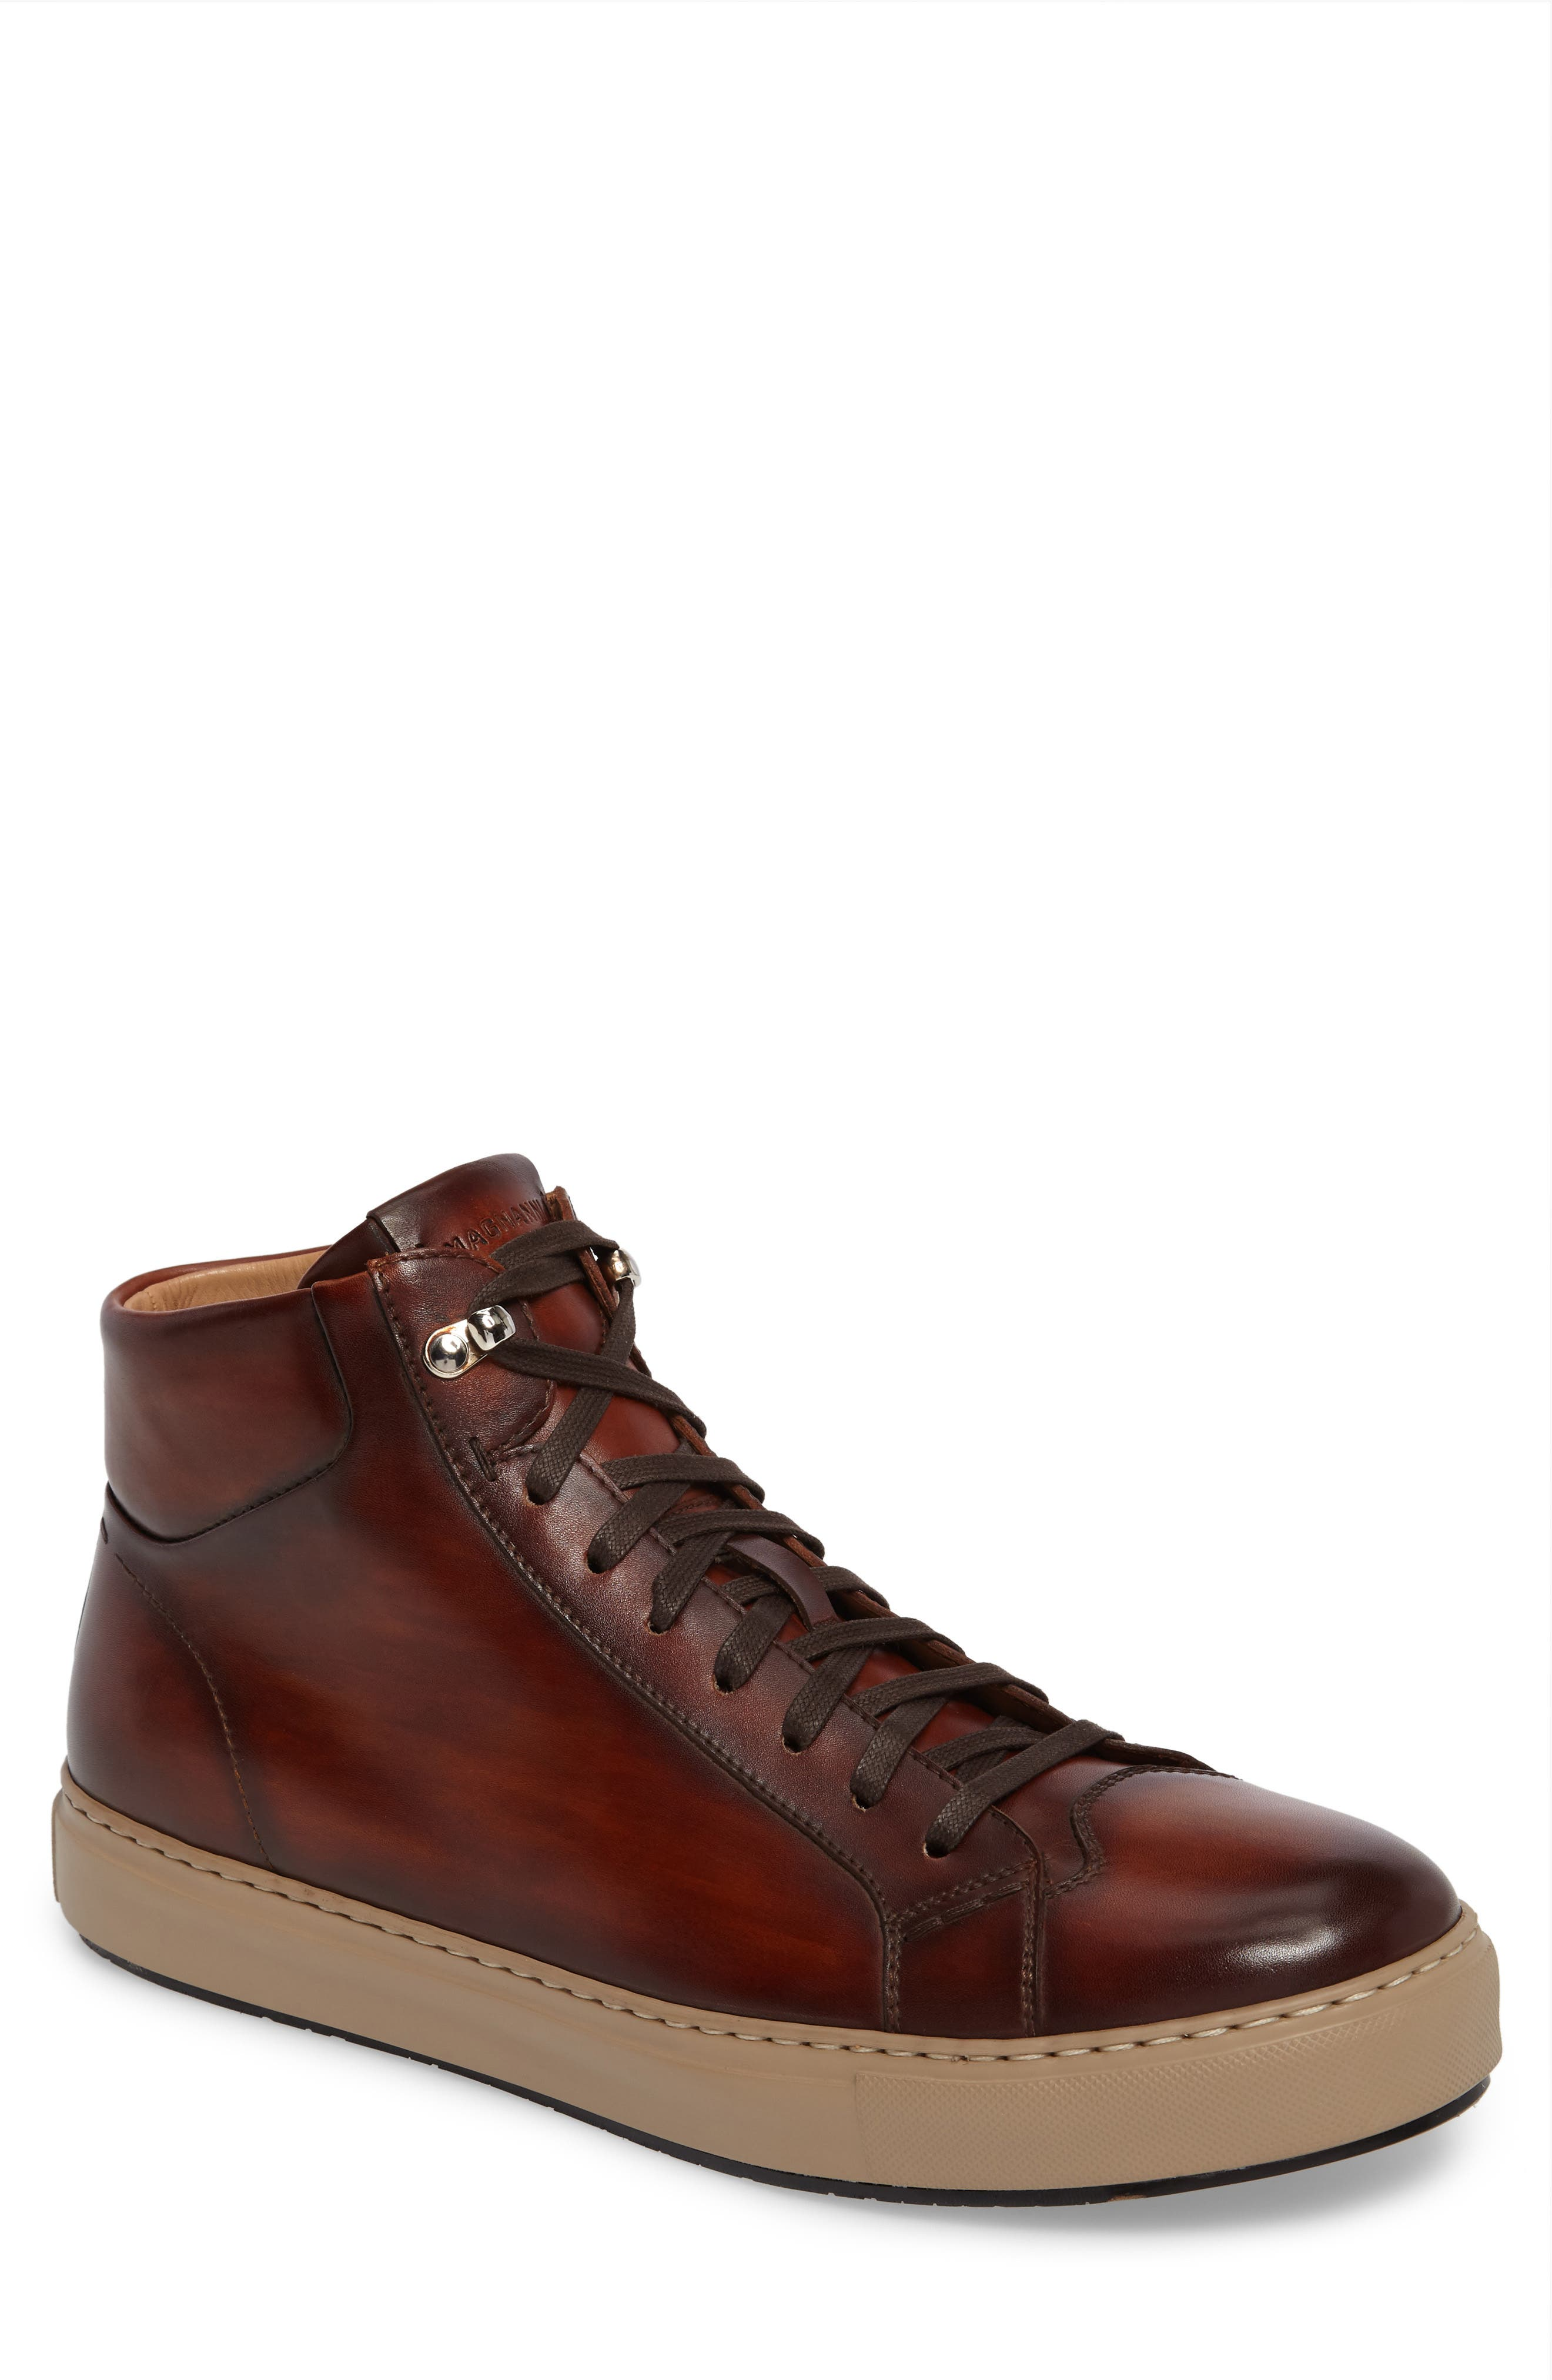 DJ Lo High-Top Sneaker,                         Main,                         color,